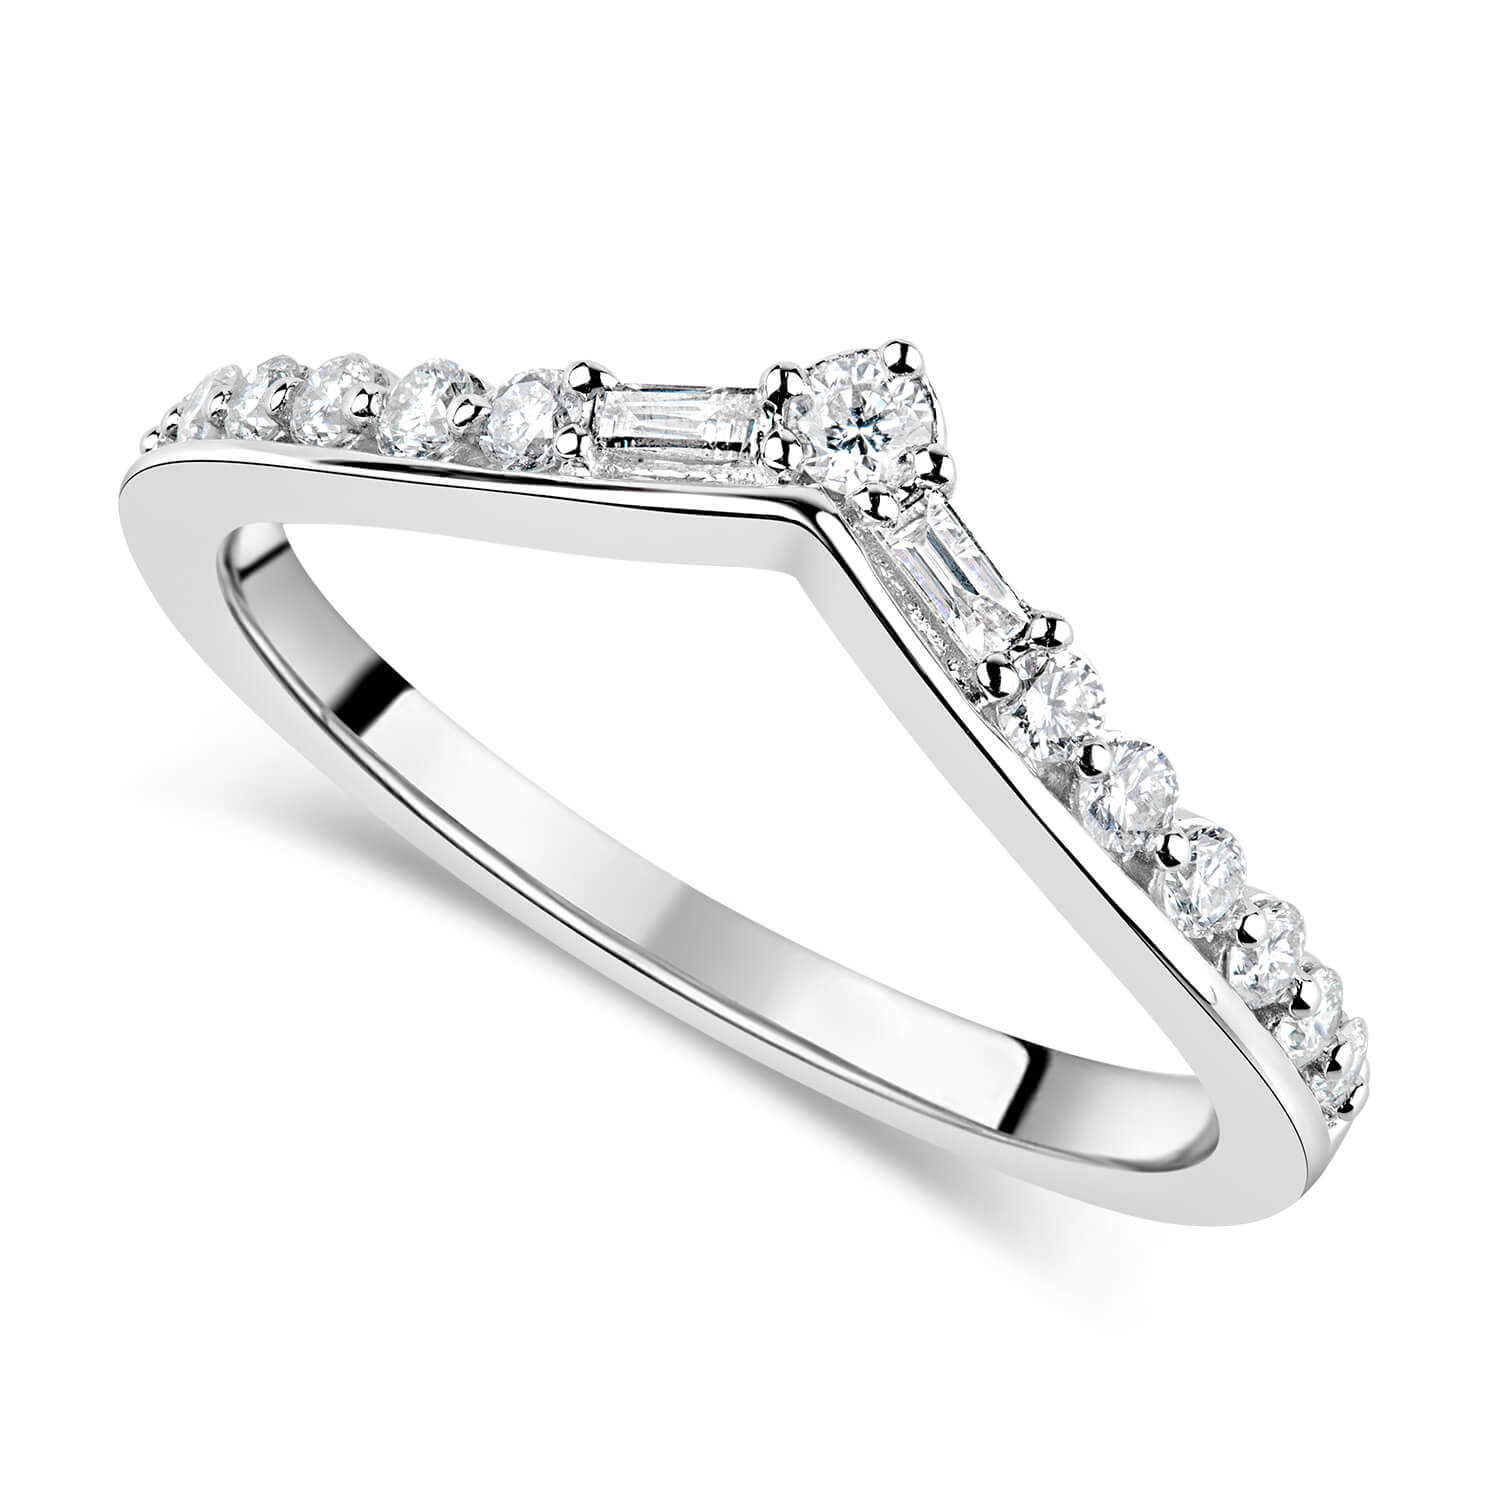 Ladies' 9ct White Gold 0.30ct Diamond V-Shaped Wedding Band